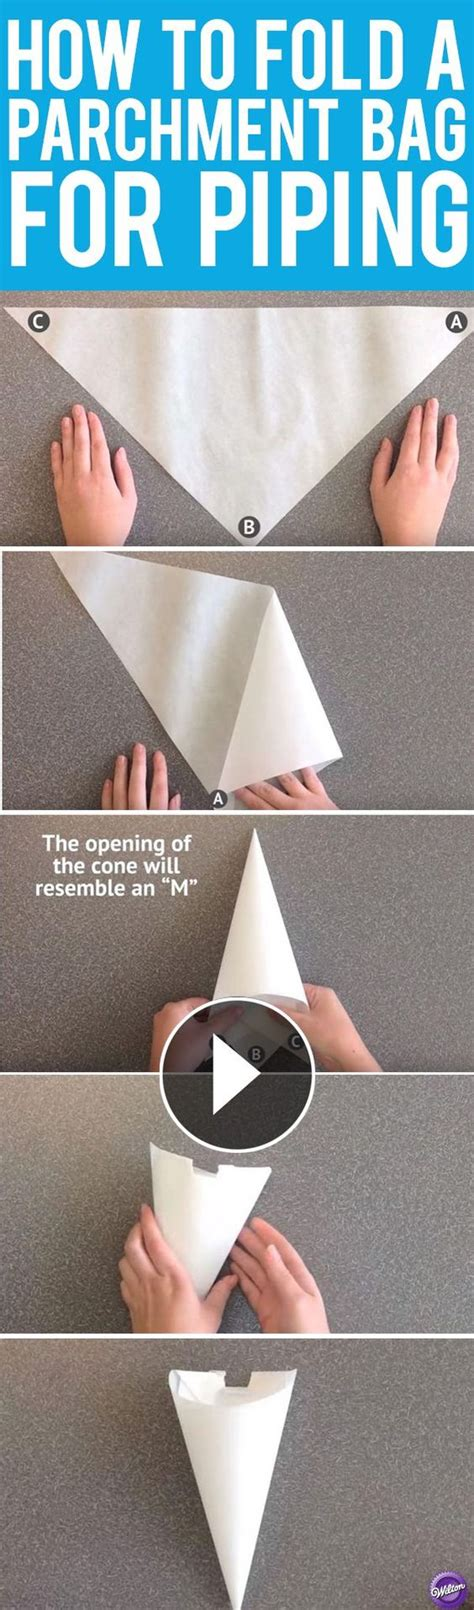 How To Make A Piping Bag From Baking Paper - learn how to make a piping bag out of parchment paper